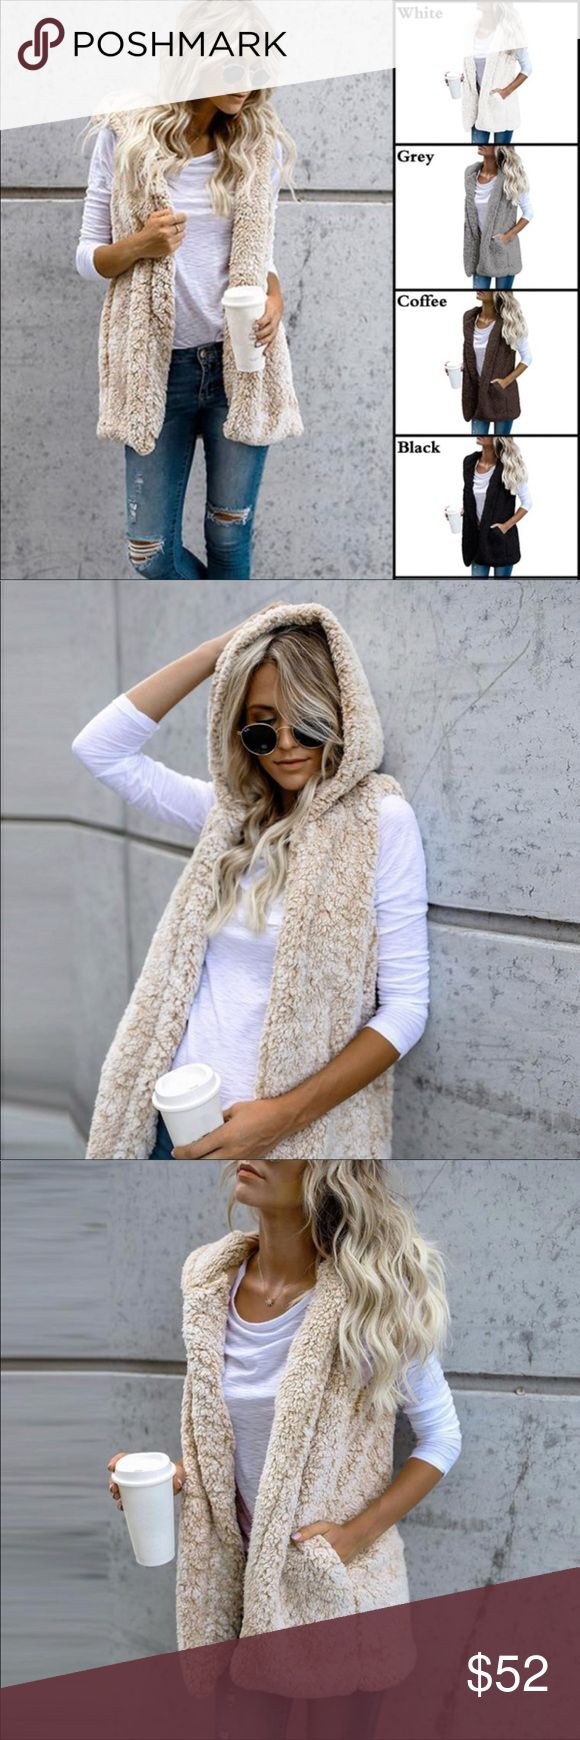 Faux Fur Hoodie Vest Womens fashionable faux fur sleeveless vest hoodie. Made with soft faux fur material, guaranteed to keep you warm and looking fantastic. Don't miss out on this fabulous fashion statement! Free gift with purchase Jackets & Coats Vests